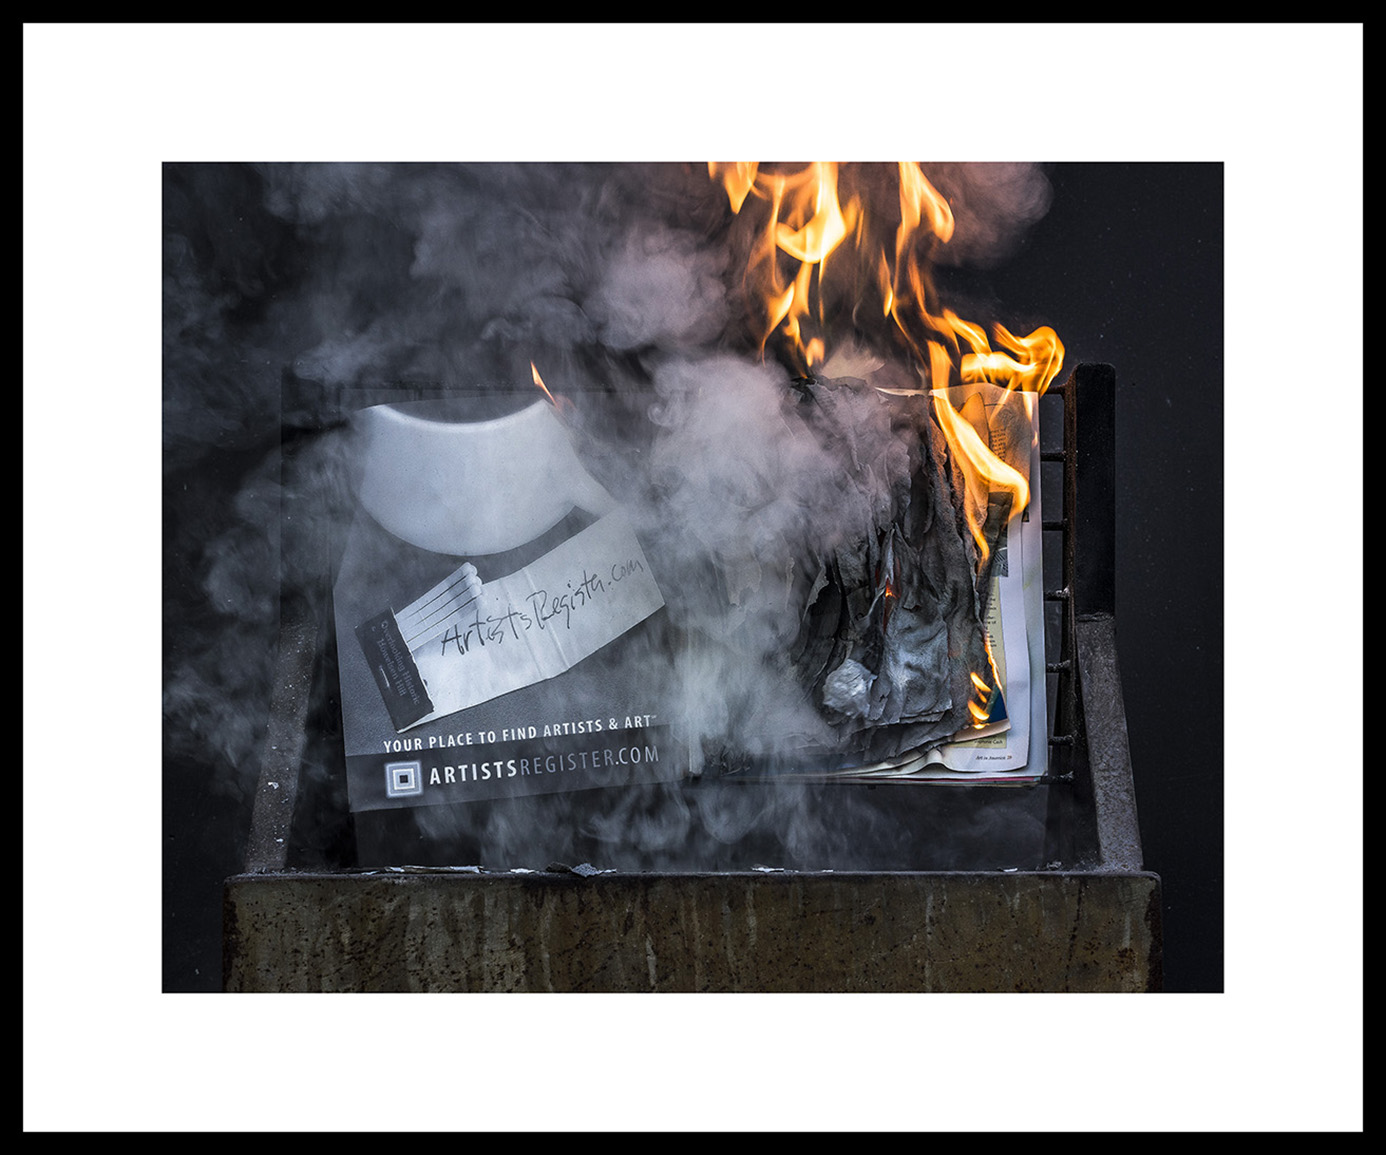 AiA Dec 2003 #0280F, 2019   Archival ink jet print on Epson exhibition fiber paper Image: 18x24in, Paper: 24x30in, Frame: 25x31in, Edition of 5 with 2AP